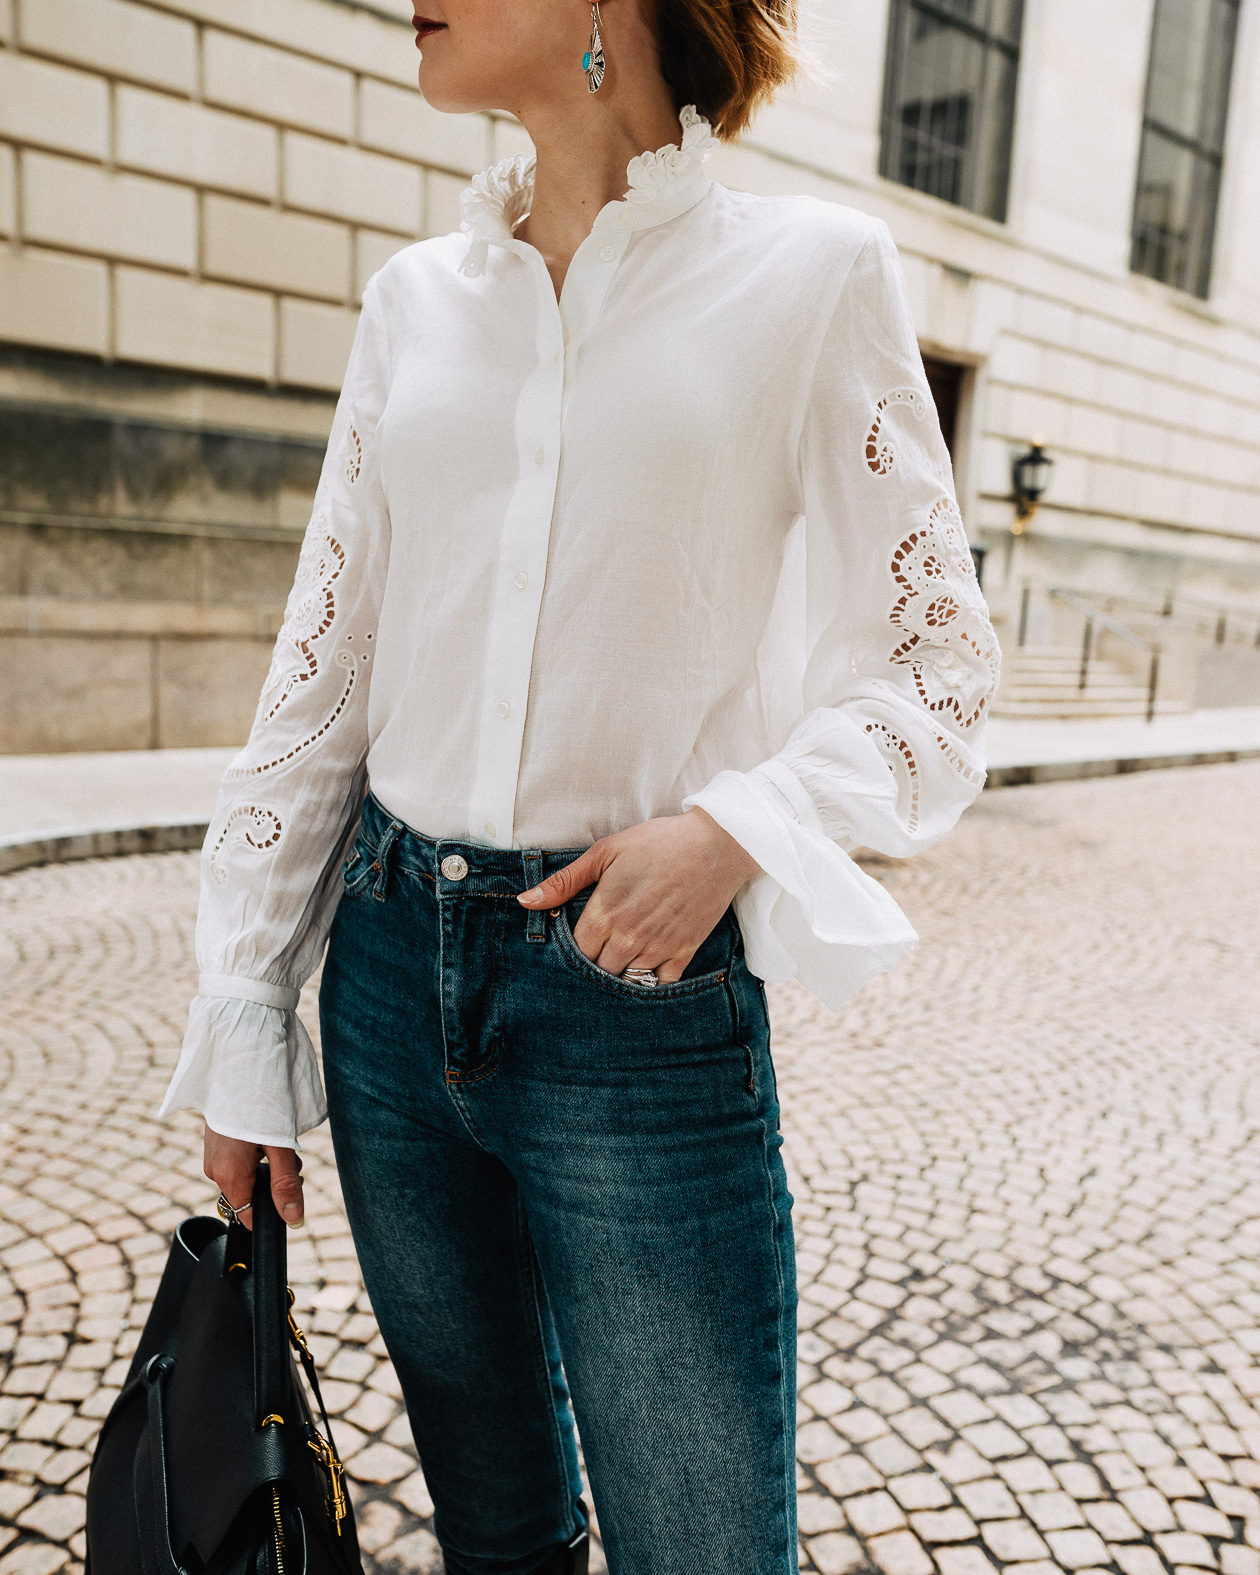 & Other Stories puffy sleeve blouse